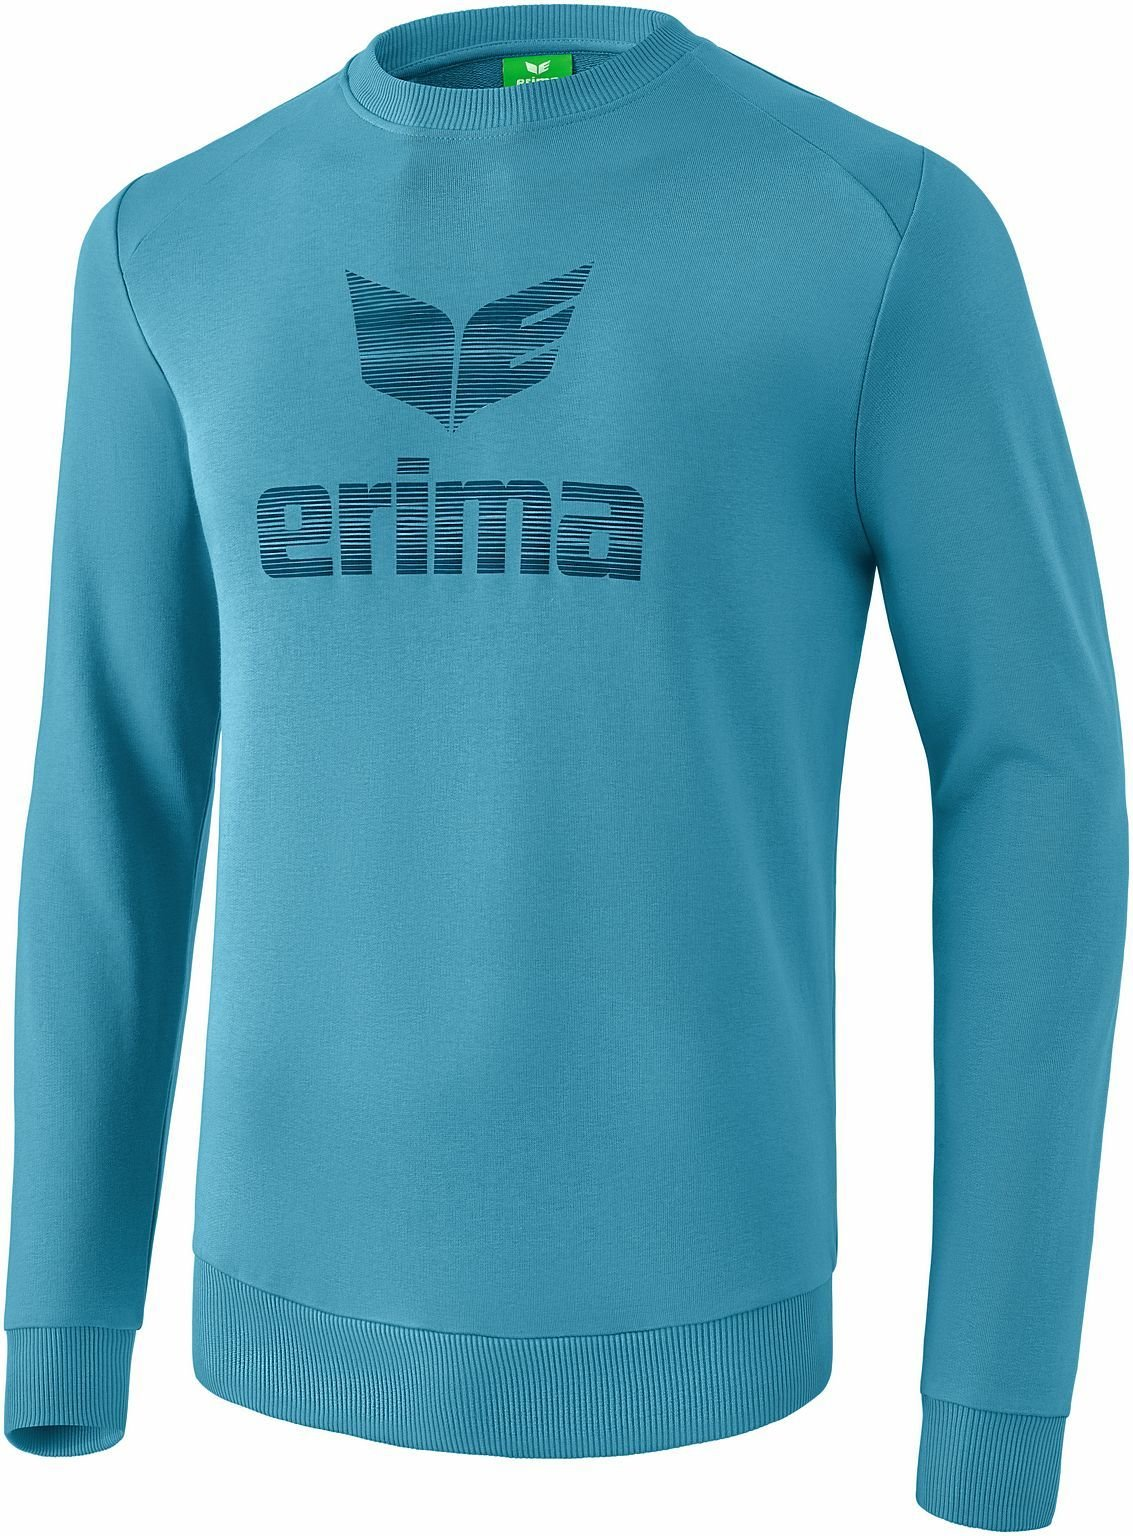 Essential SweatShirt Herren Kinder